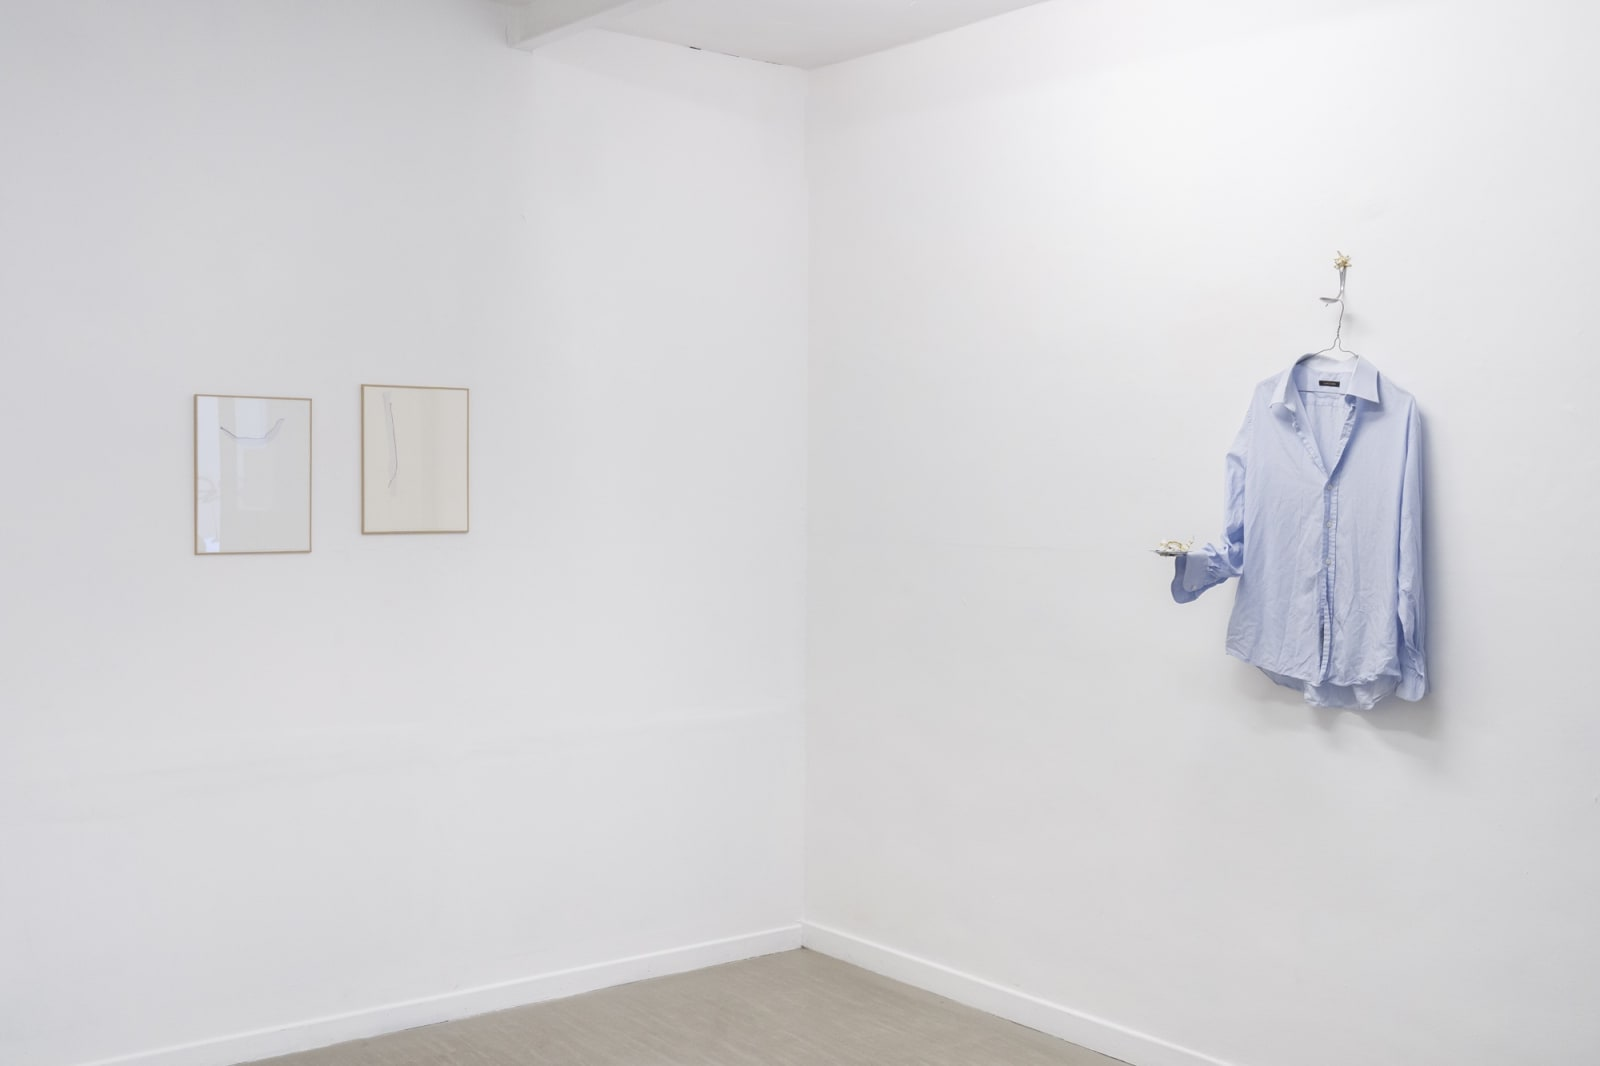 Sharing Our Dreaming Room, installation view, first hall, ph. Masiar Pasquali